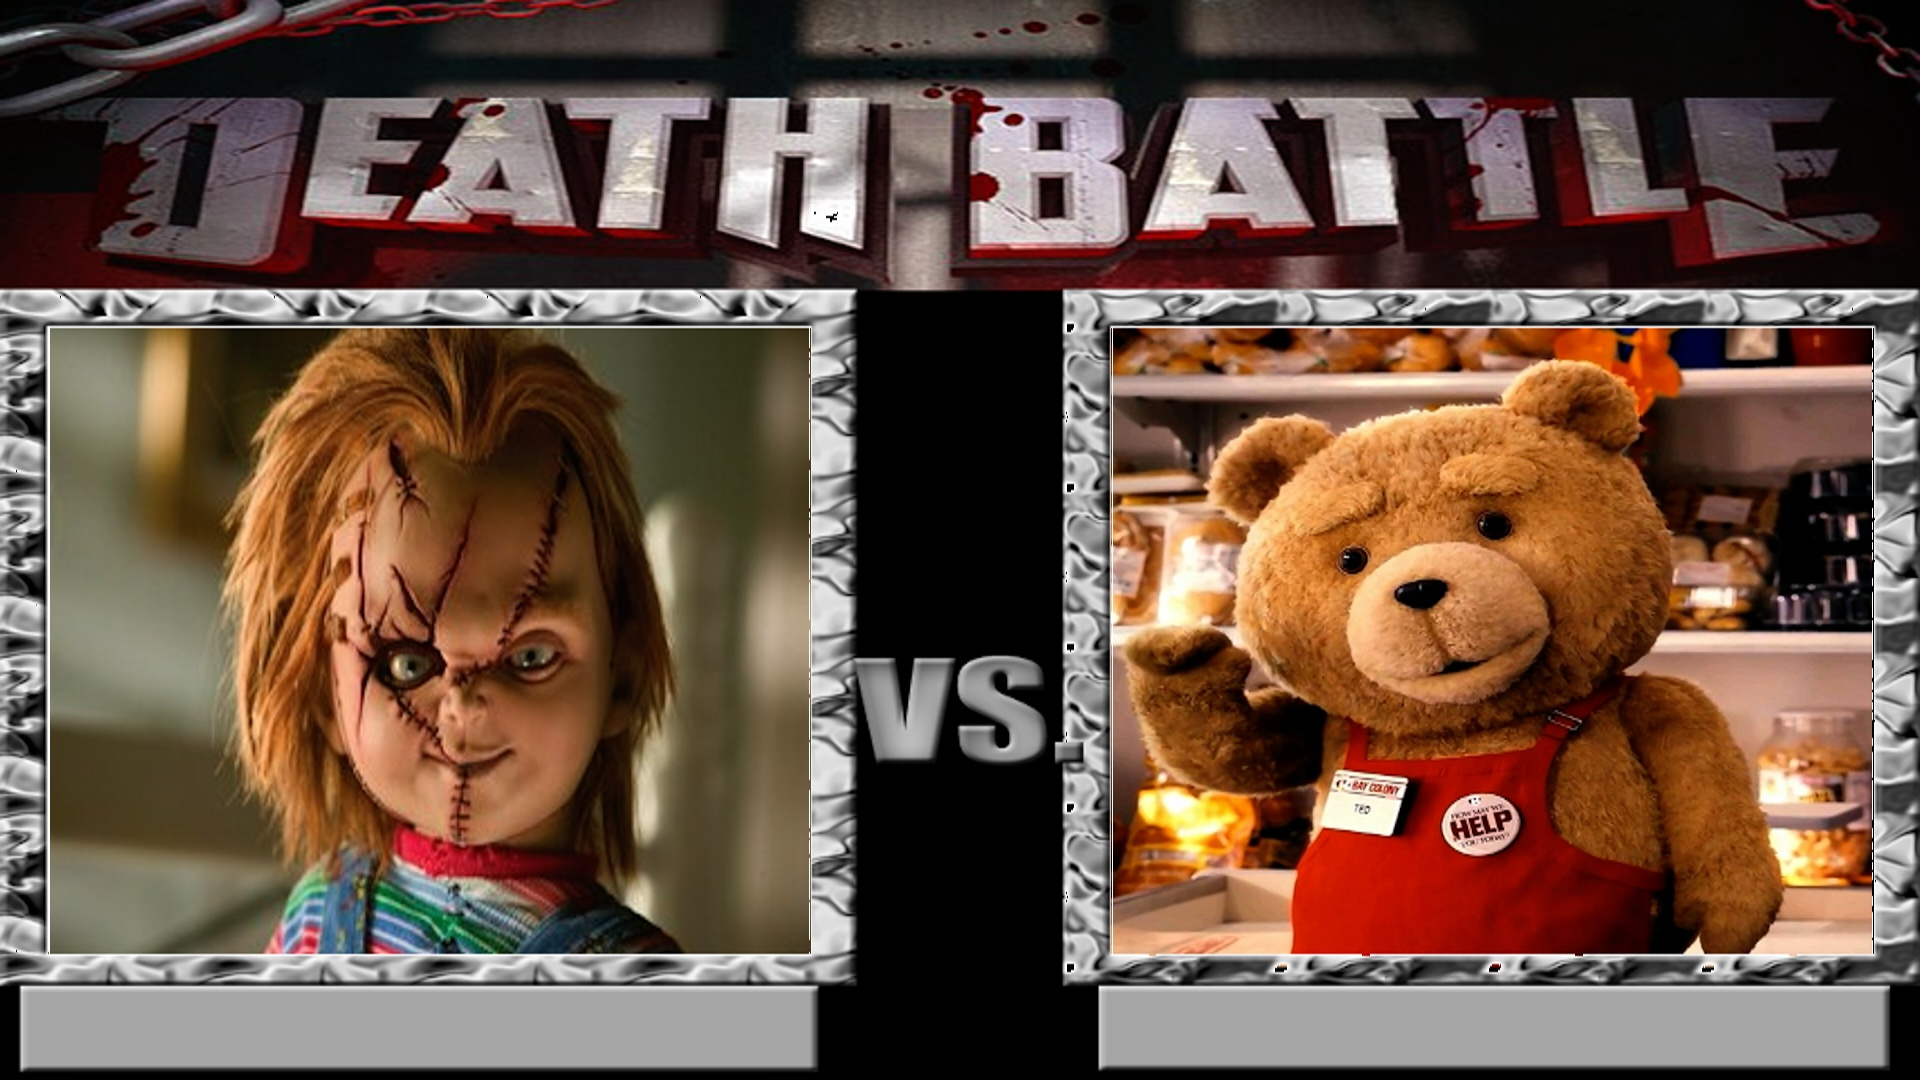 chucky_vs_ted_by_normanjokerwise-d5zgj1a